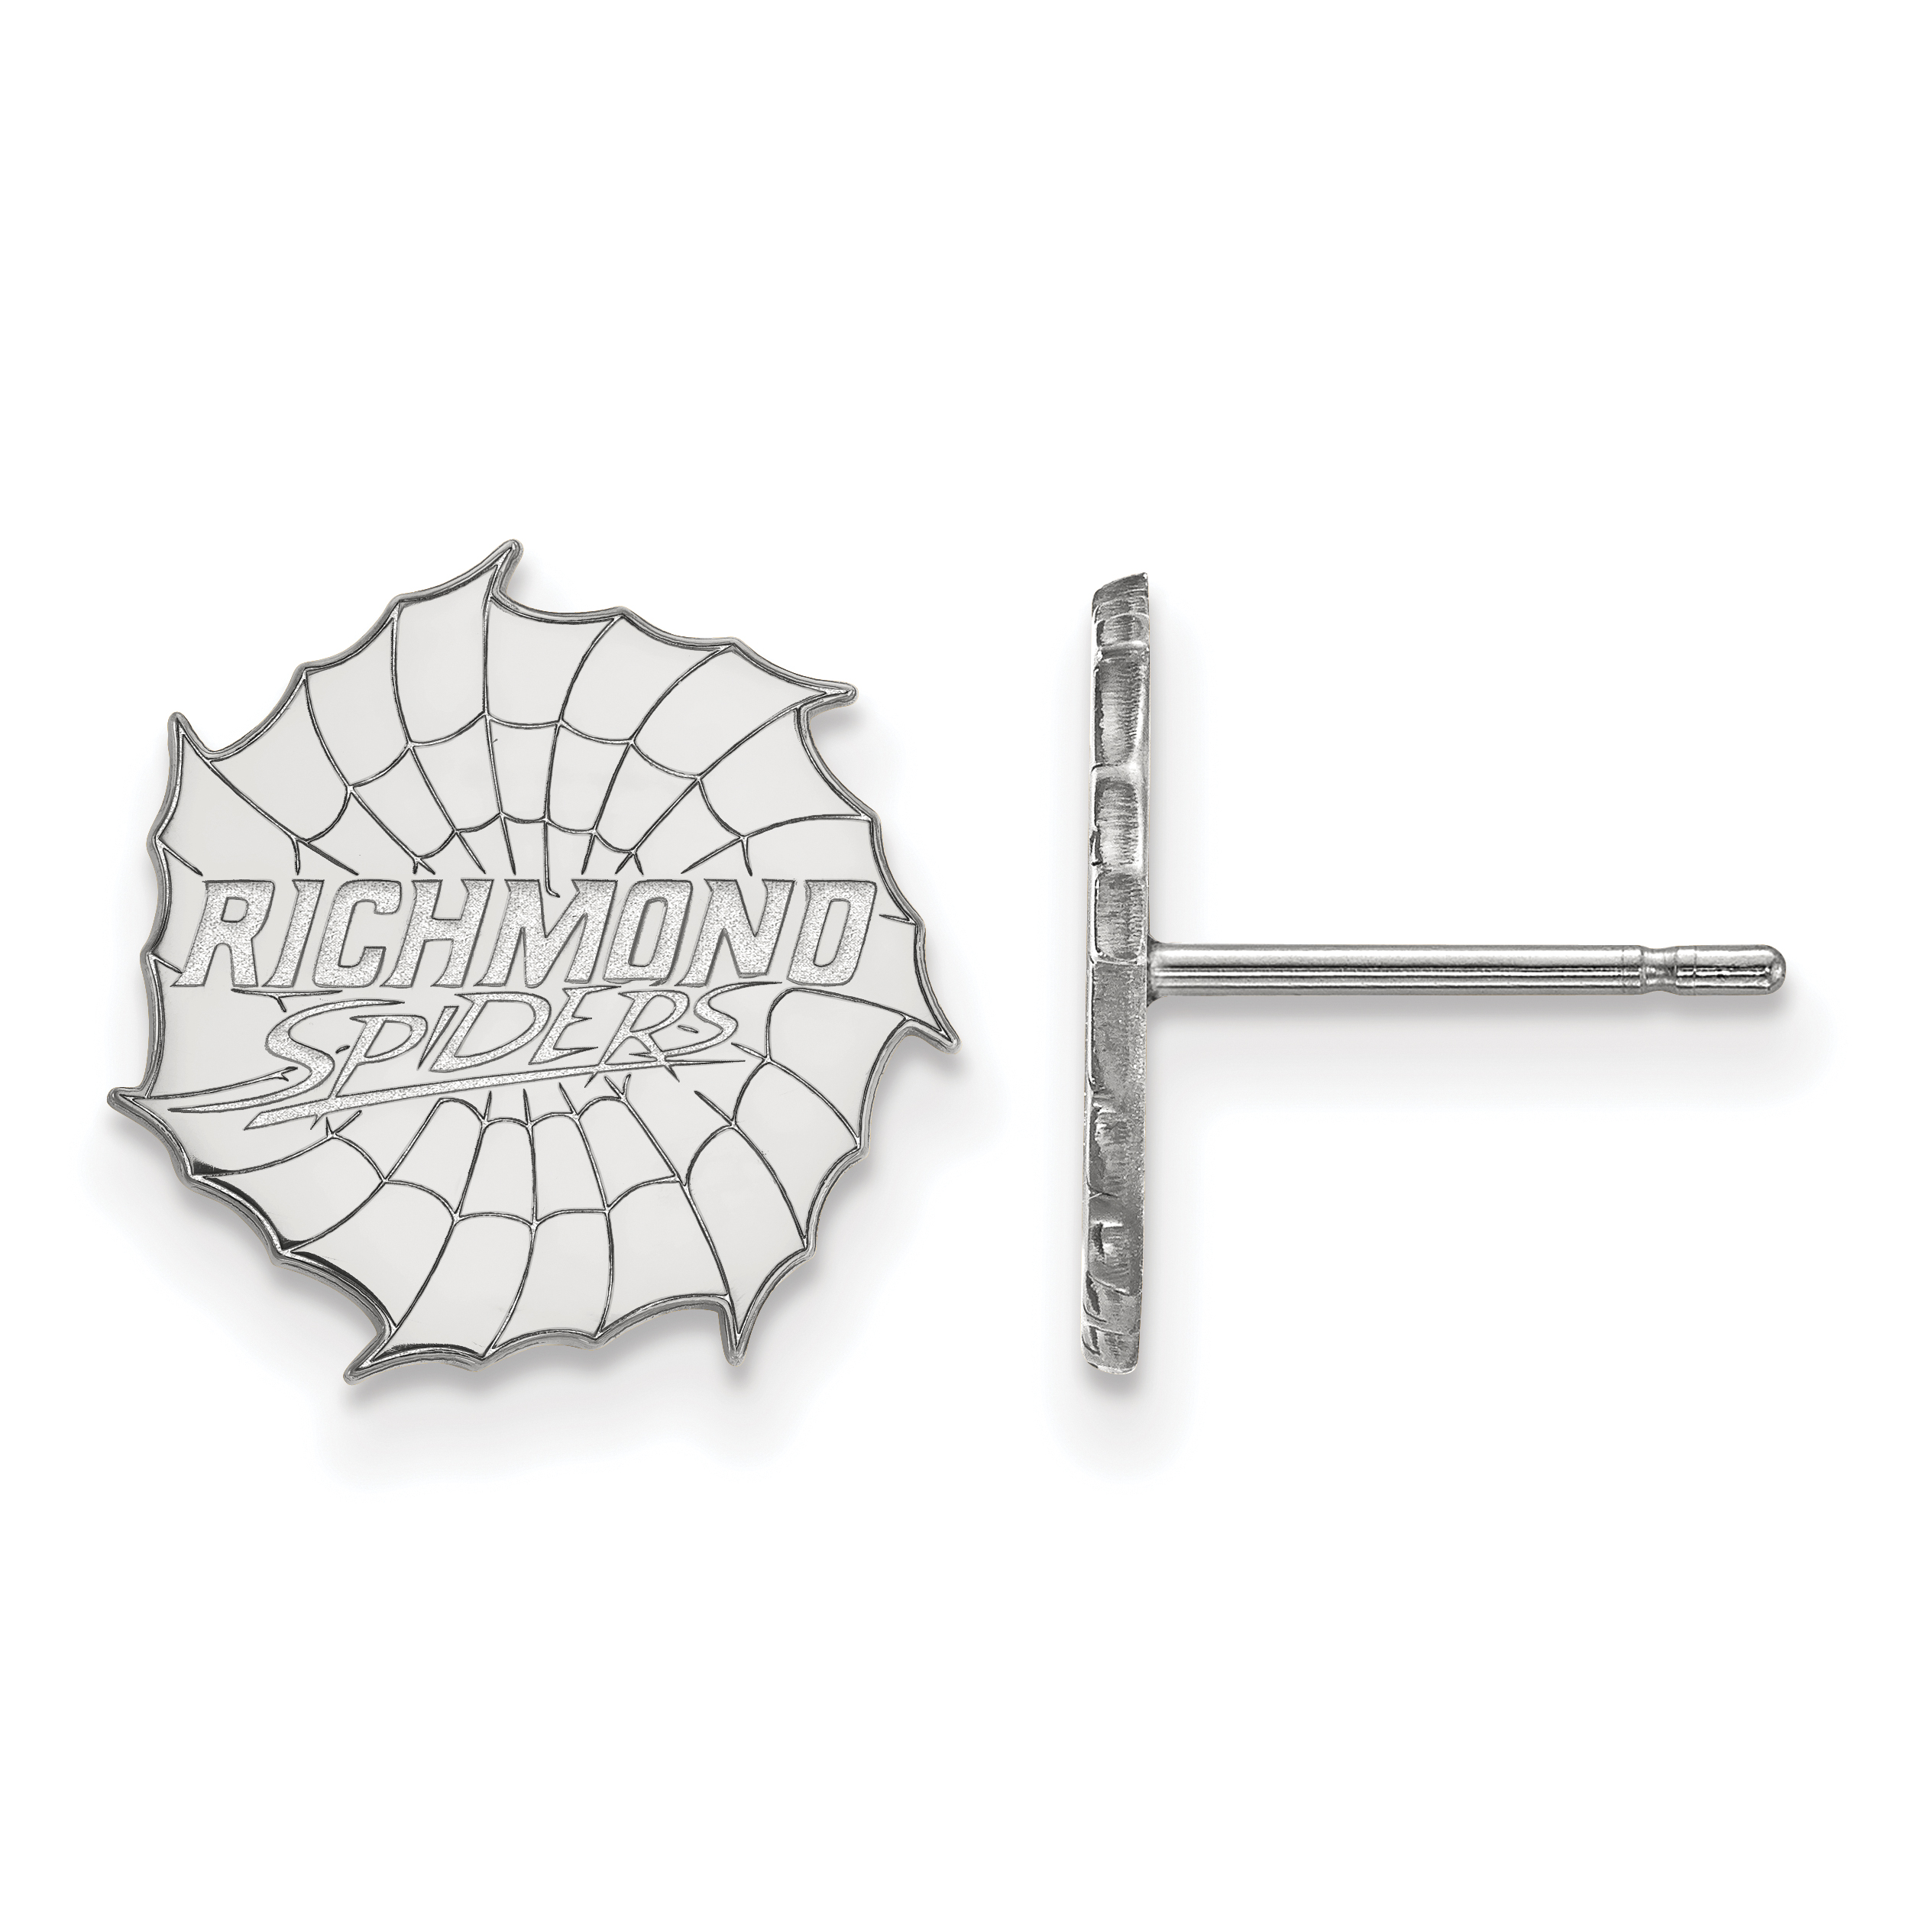 10kw University of Richmond Small Post Earrings. weight: 1.92, Lengh: 12mm